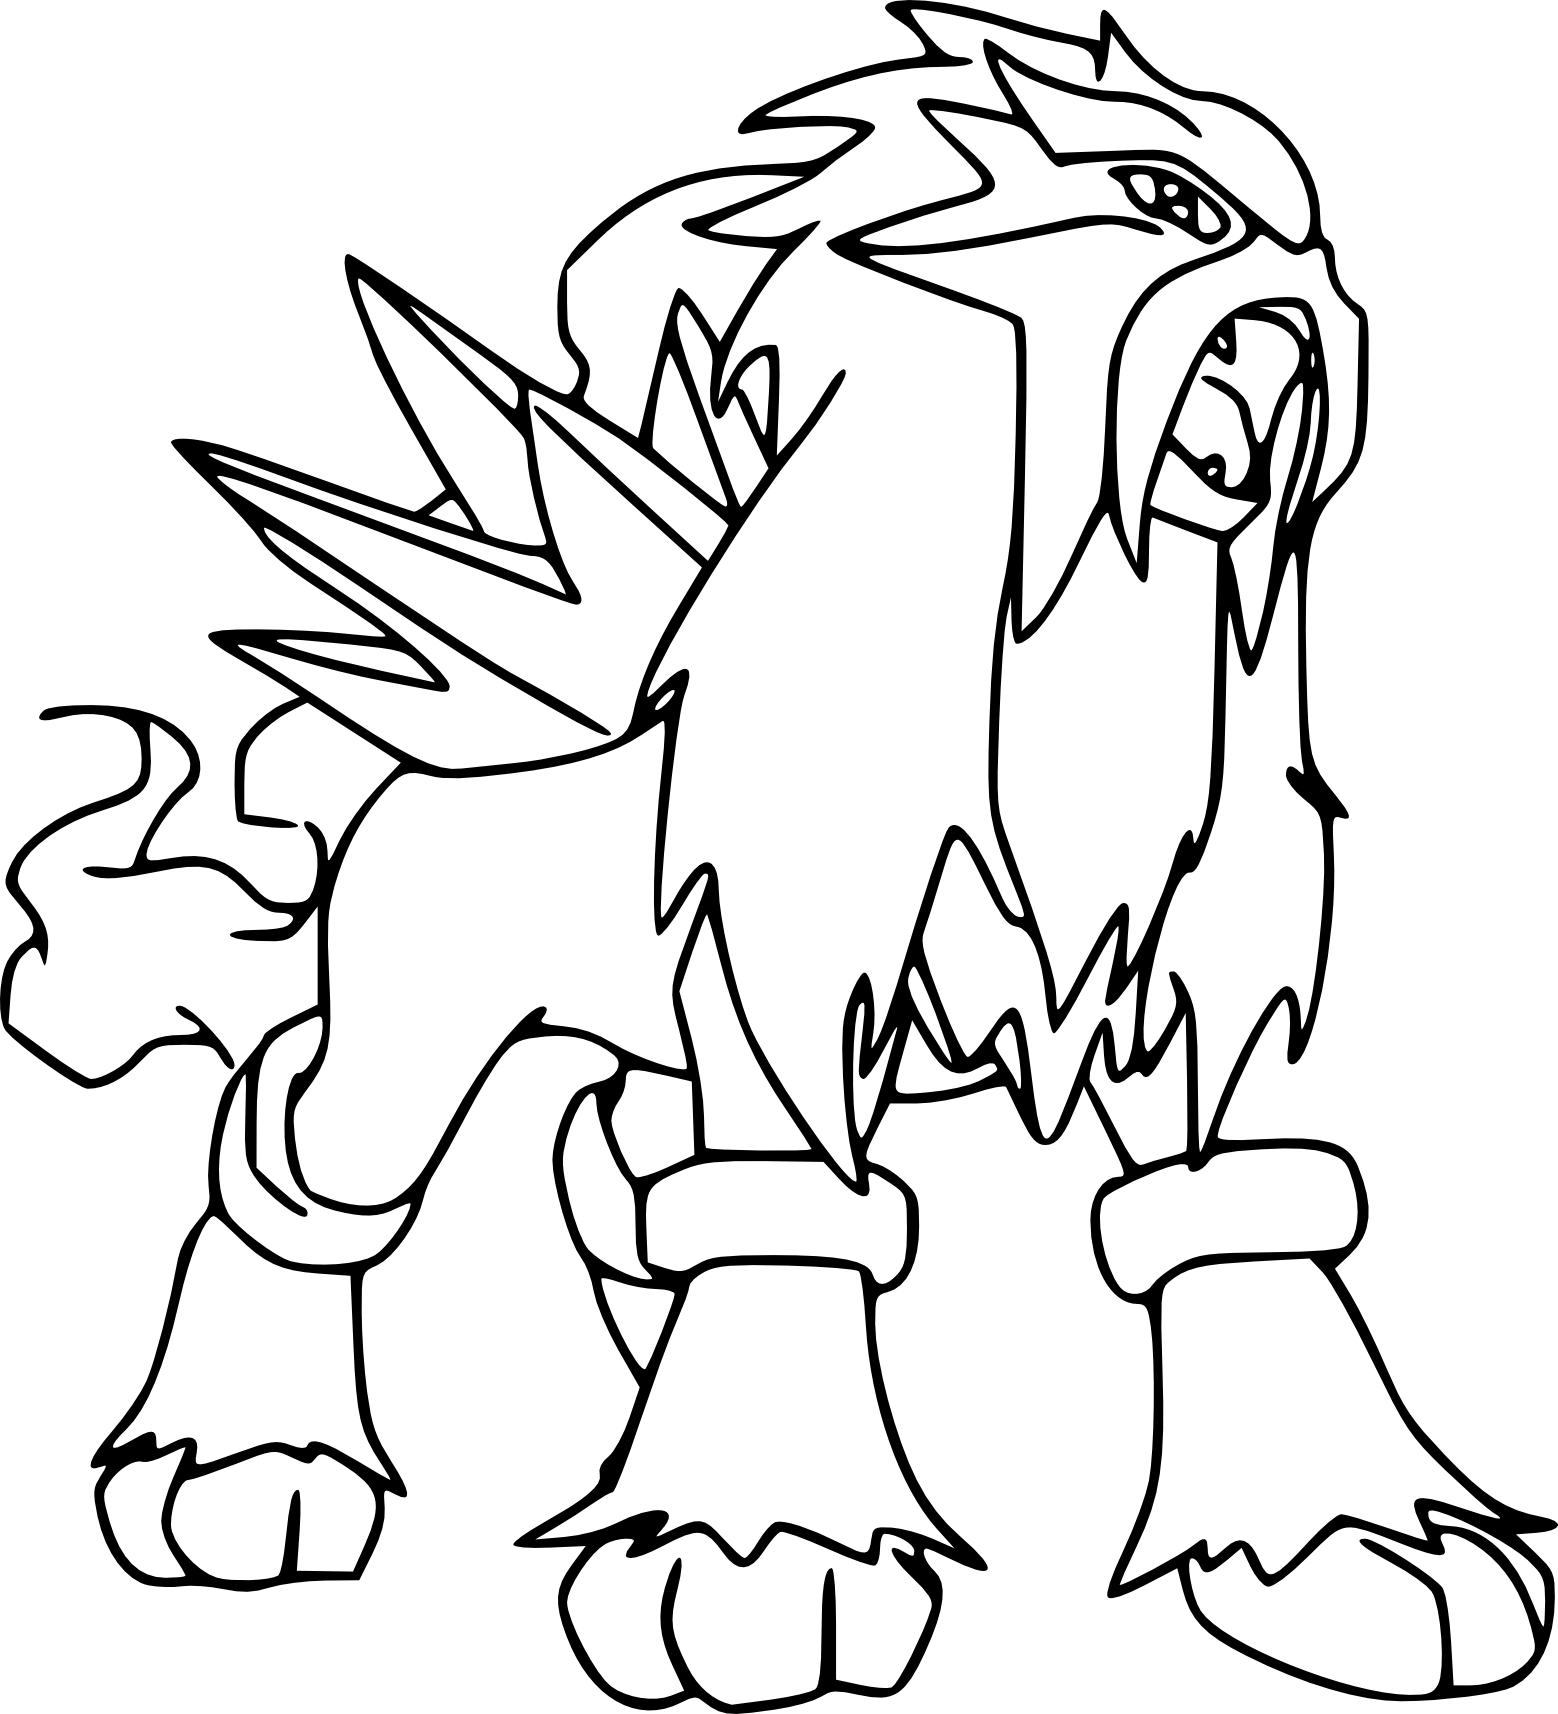 141 dessins de coloriage pokemon imprimer - Coloriage pokemon en ligne ...